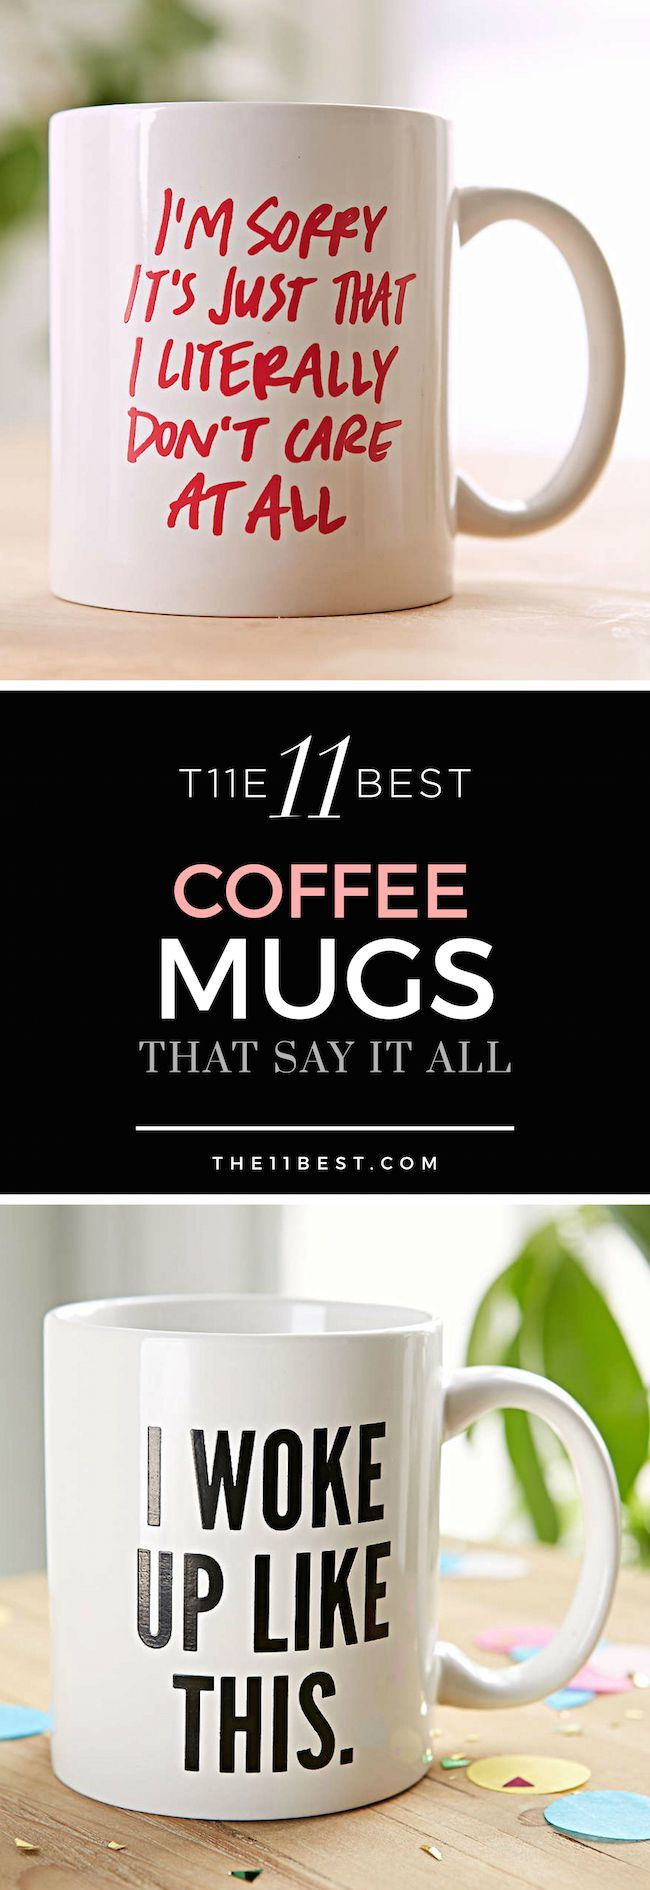 oThe 11 Best Coffee Mugs that Say it All! - did not see the other 11; but this is just how it is